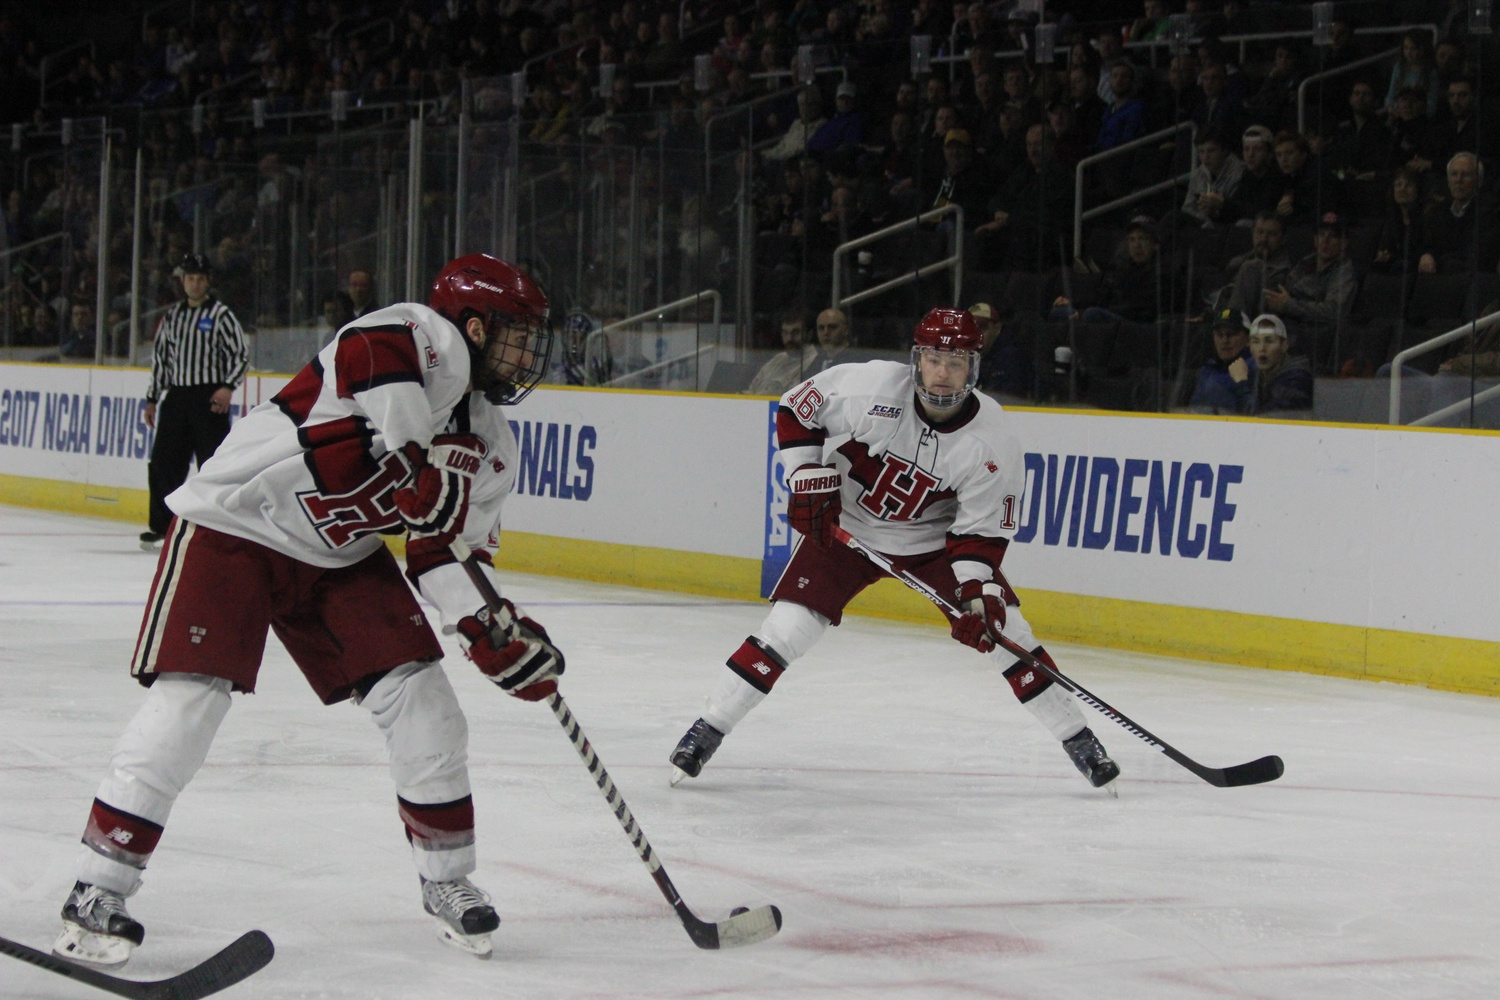 Approaching the Air Force goal, senior forward Alex Kerfoot looks to pass to teammate Ryan Donato. Kerfoot would finish the night with two assists, Donato with a goal.